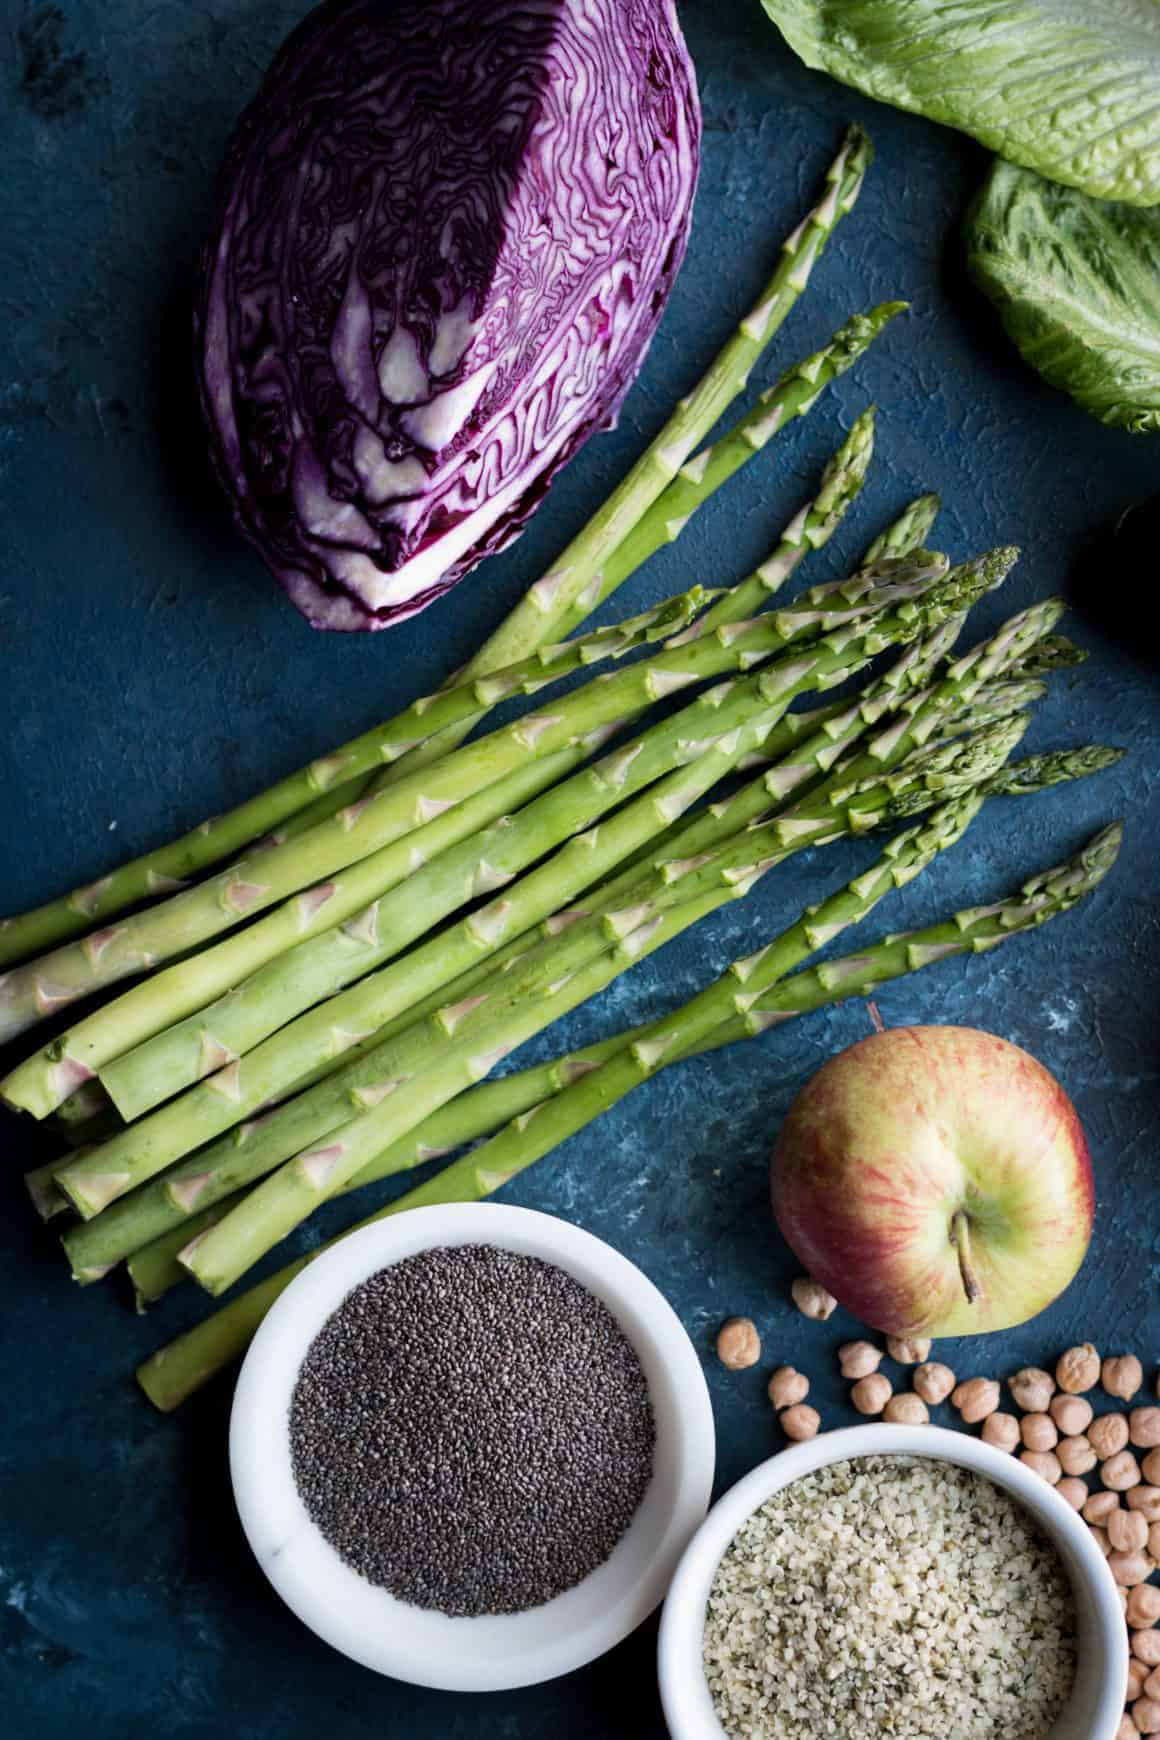 Considering a plant-based diet? Here are some things you should know